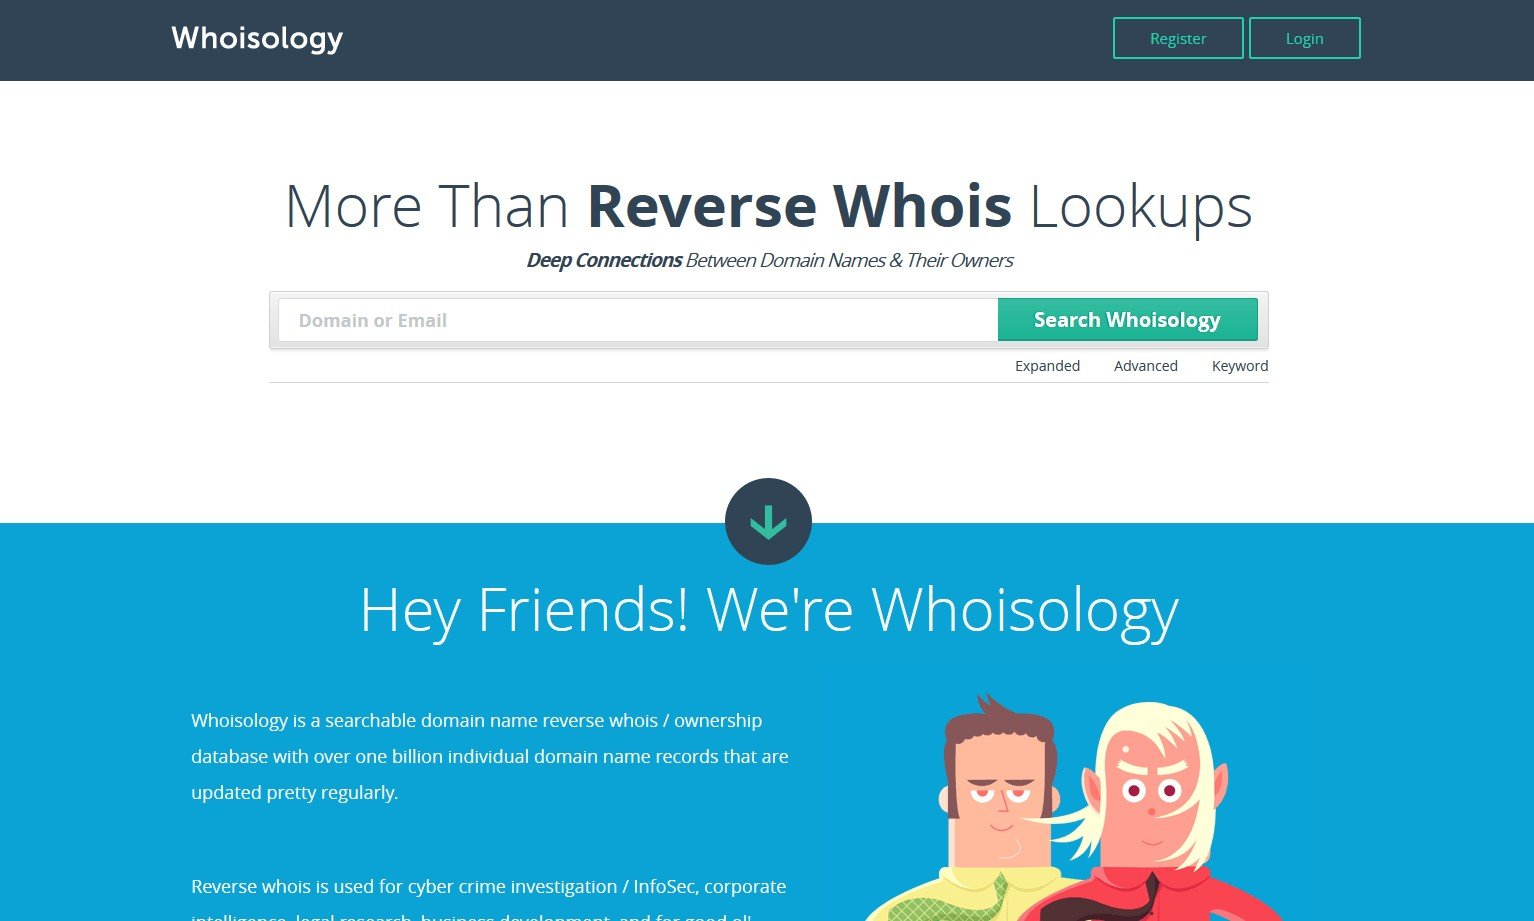 Whoisology Alternatives and Similar Websites and Apps